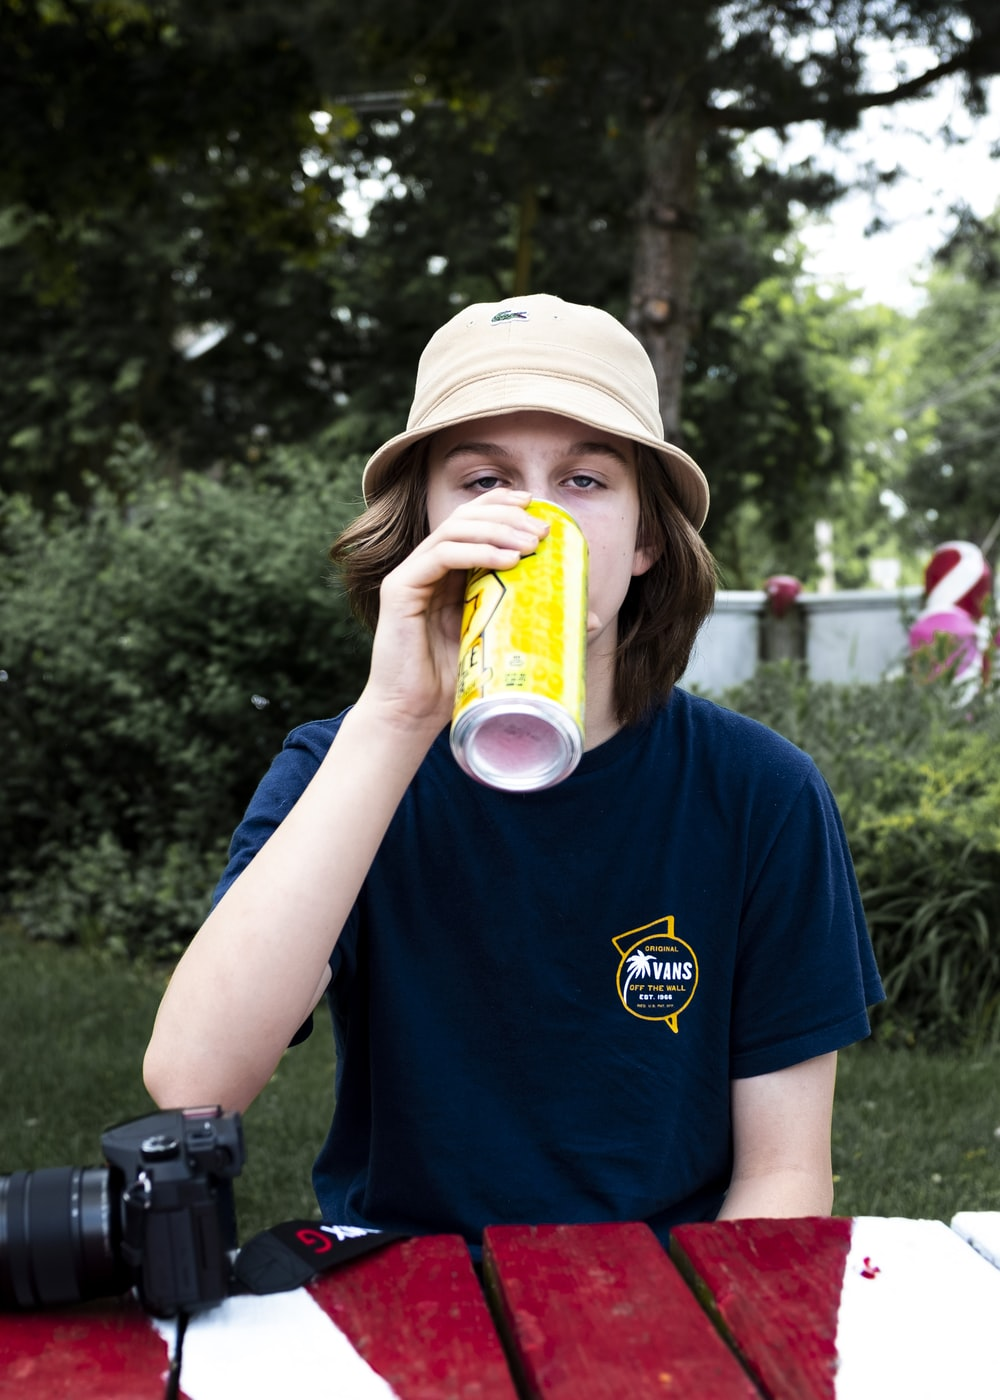 boy in blue crew neck t-shirt holding yellow and white plastic cup